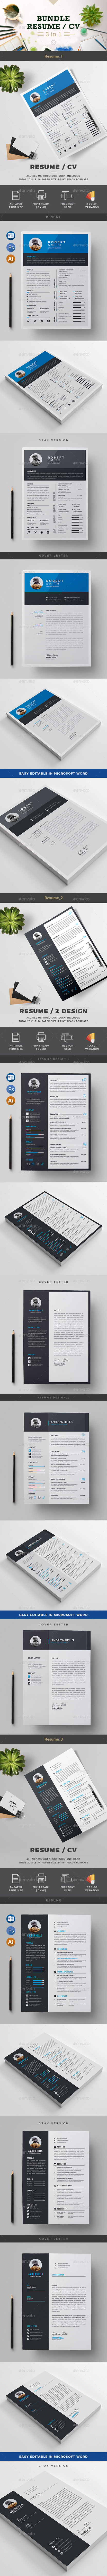 Resume Bundle 3 in 1 - Resumes Stationery